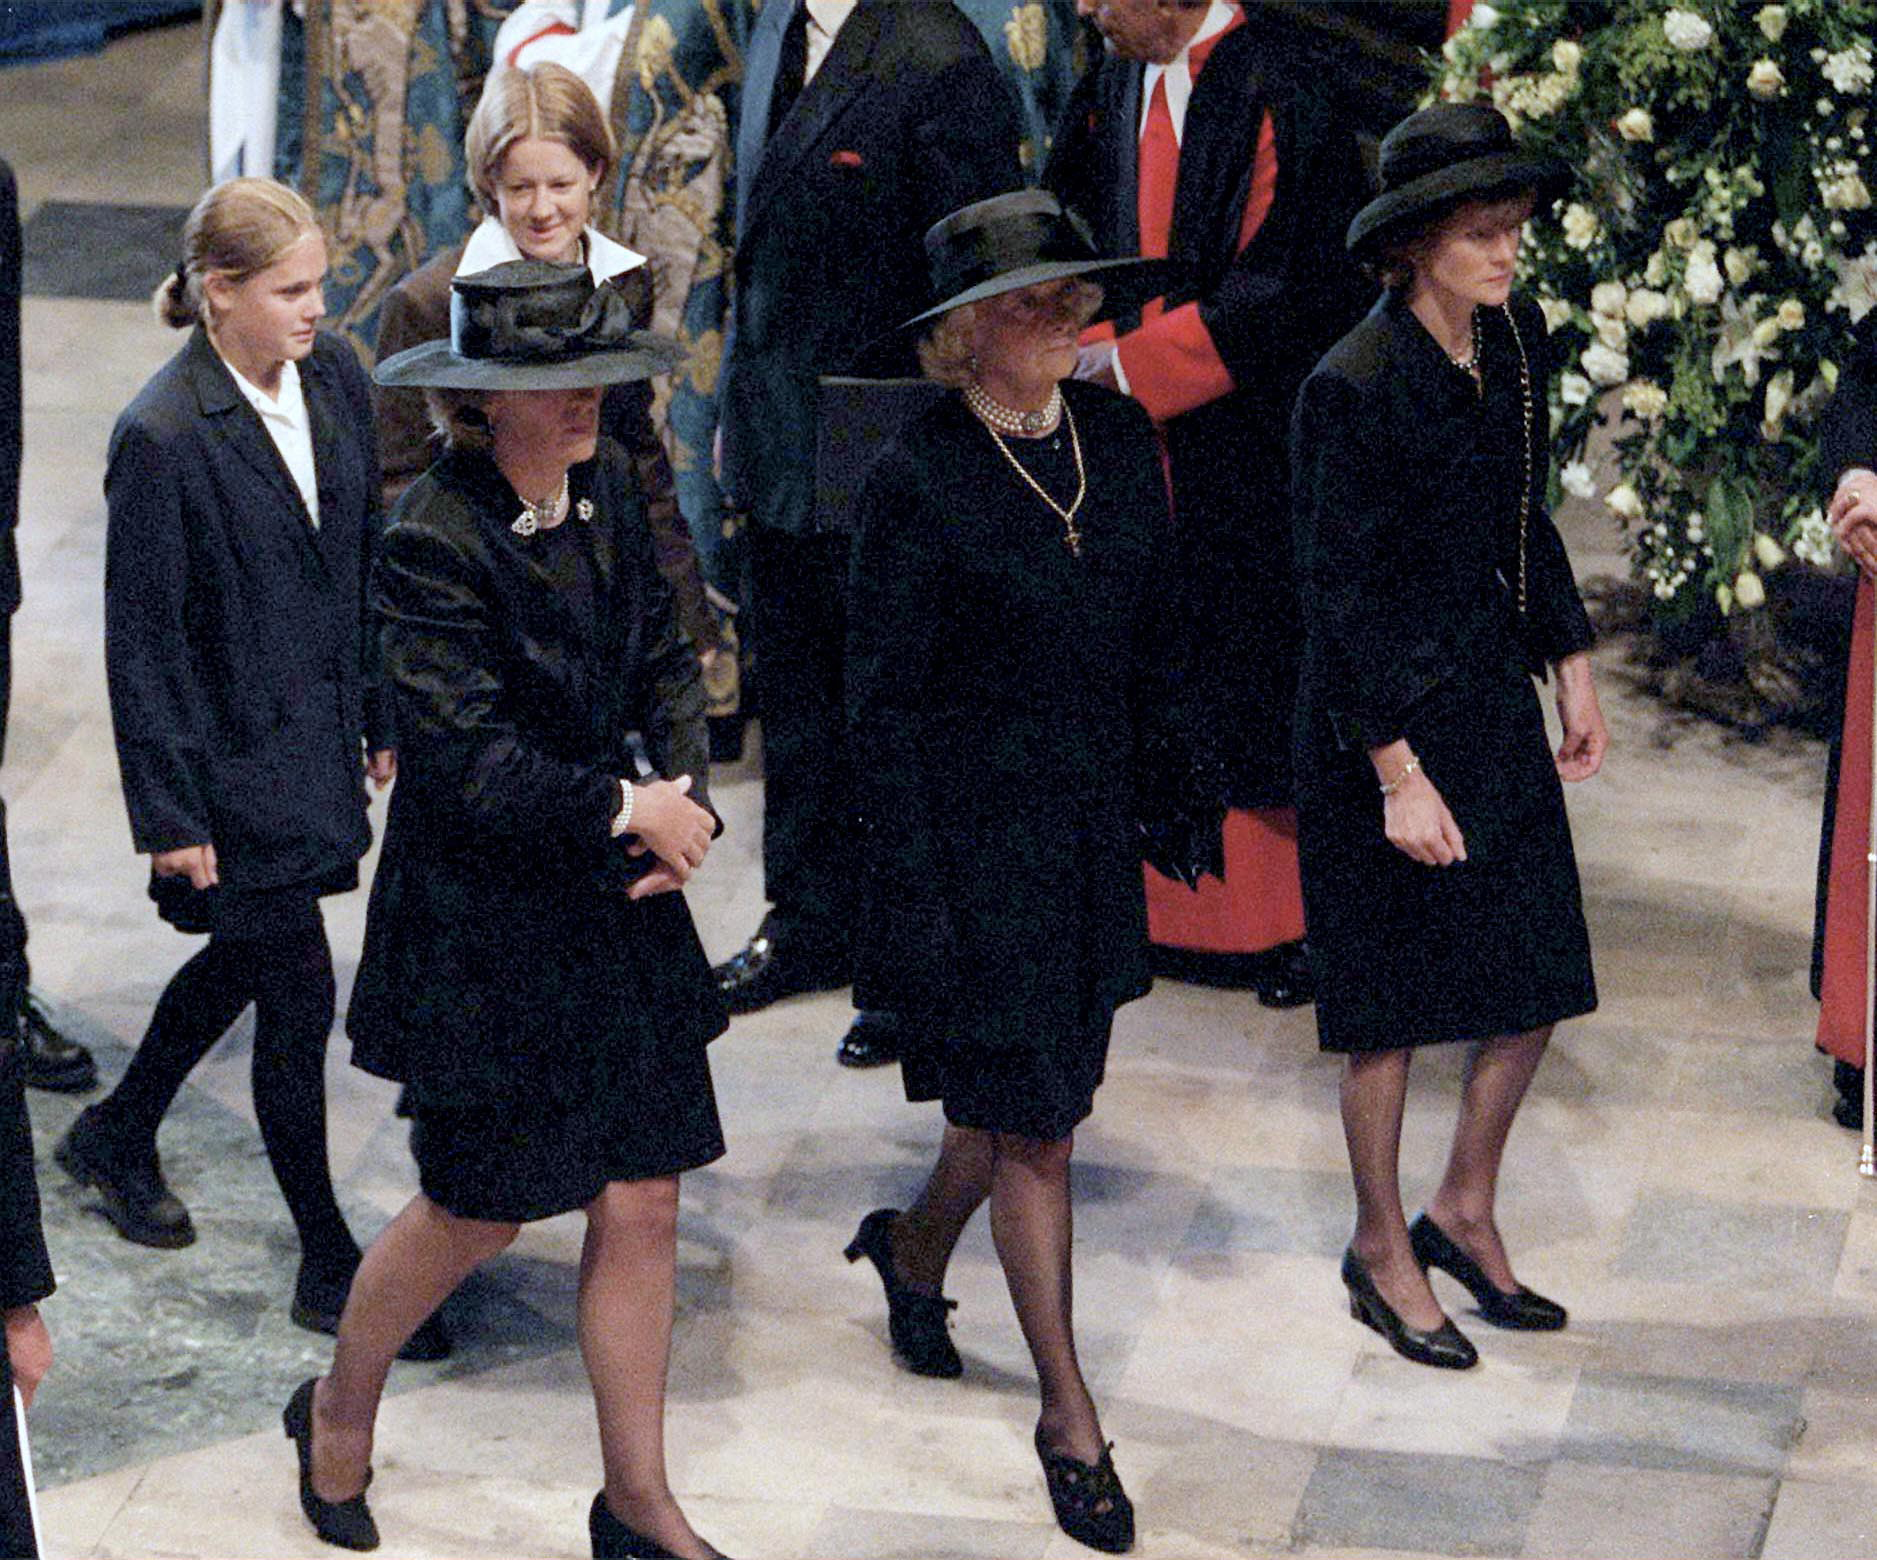 (L To R) Jane Fellowes, Mrs Frances Shand-kydd And Lady Sarah Mccorquodale at the funeral of Princess Diana in 1997.